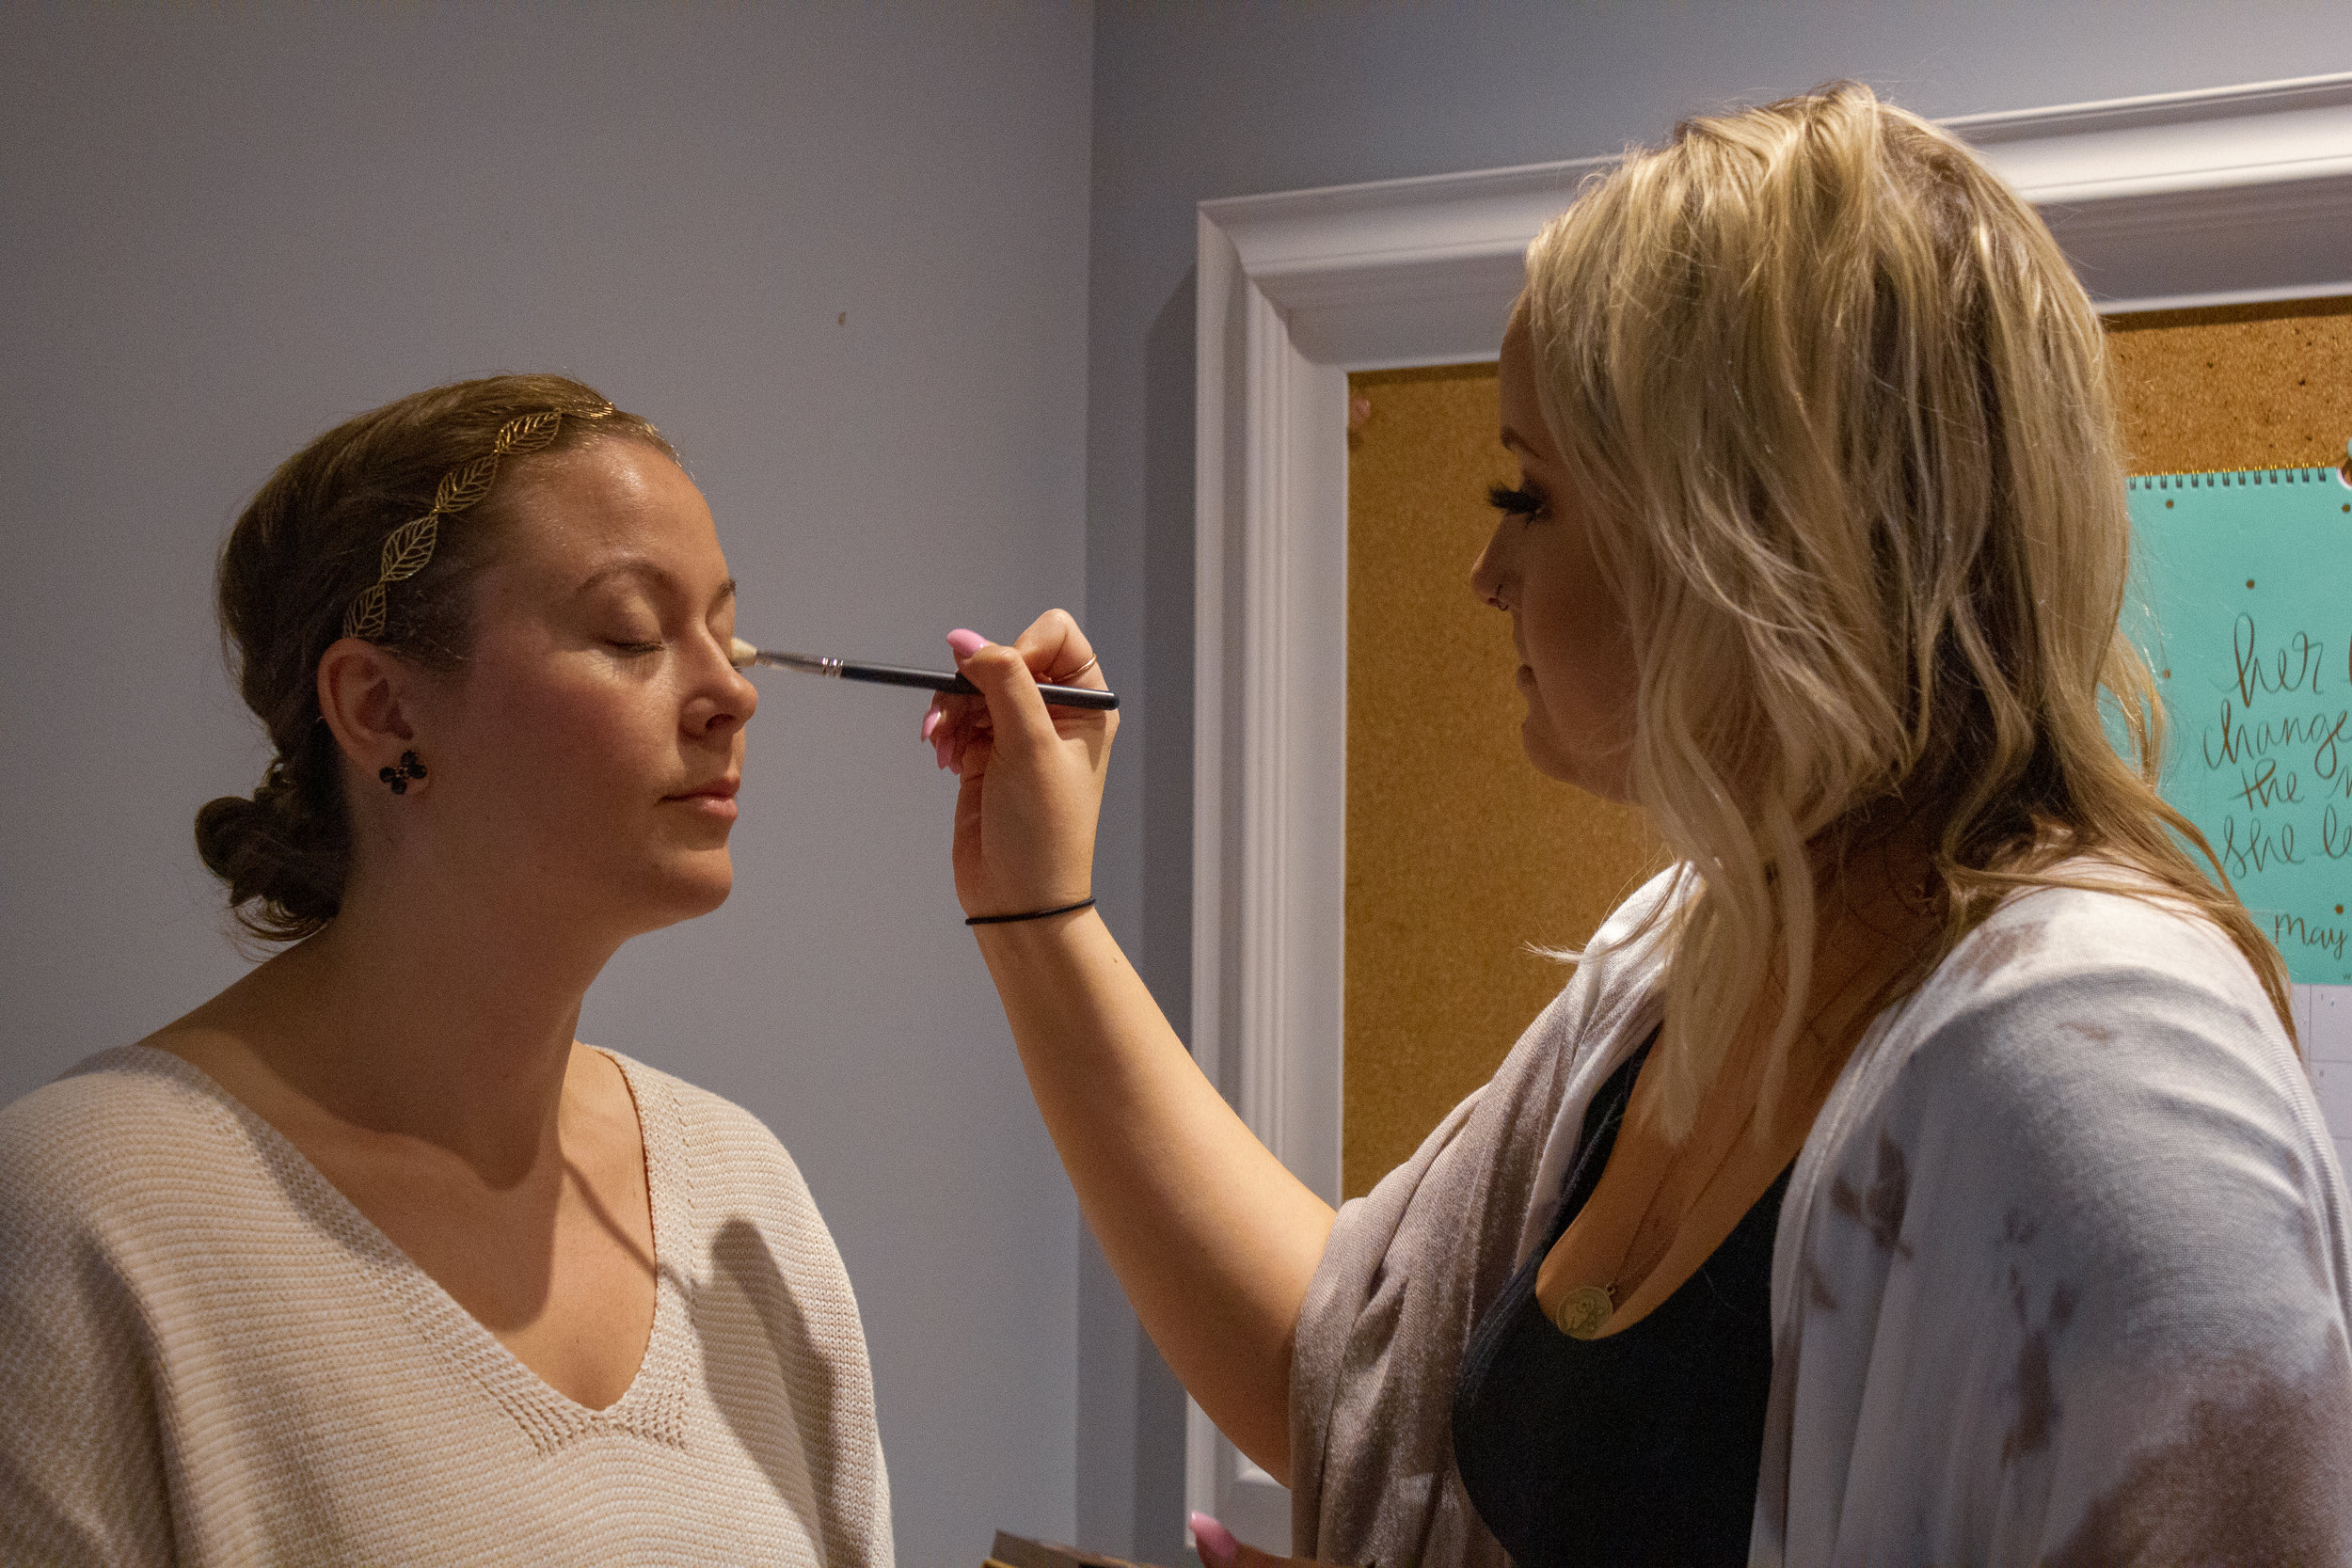 Megan Fletcher getting a touch-up from Samantha Jane Beauty